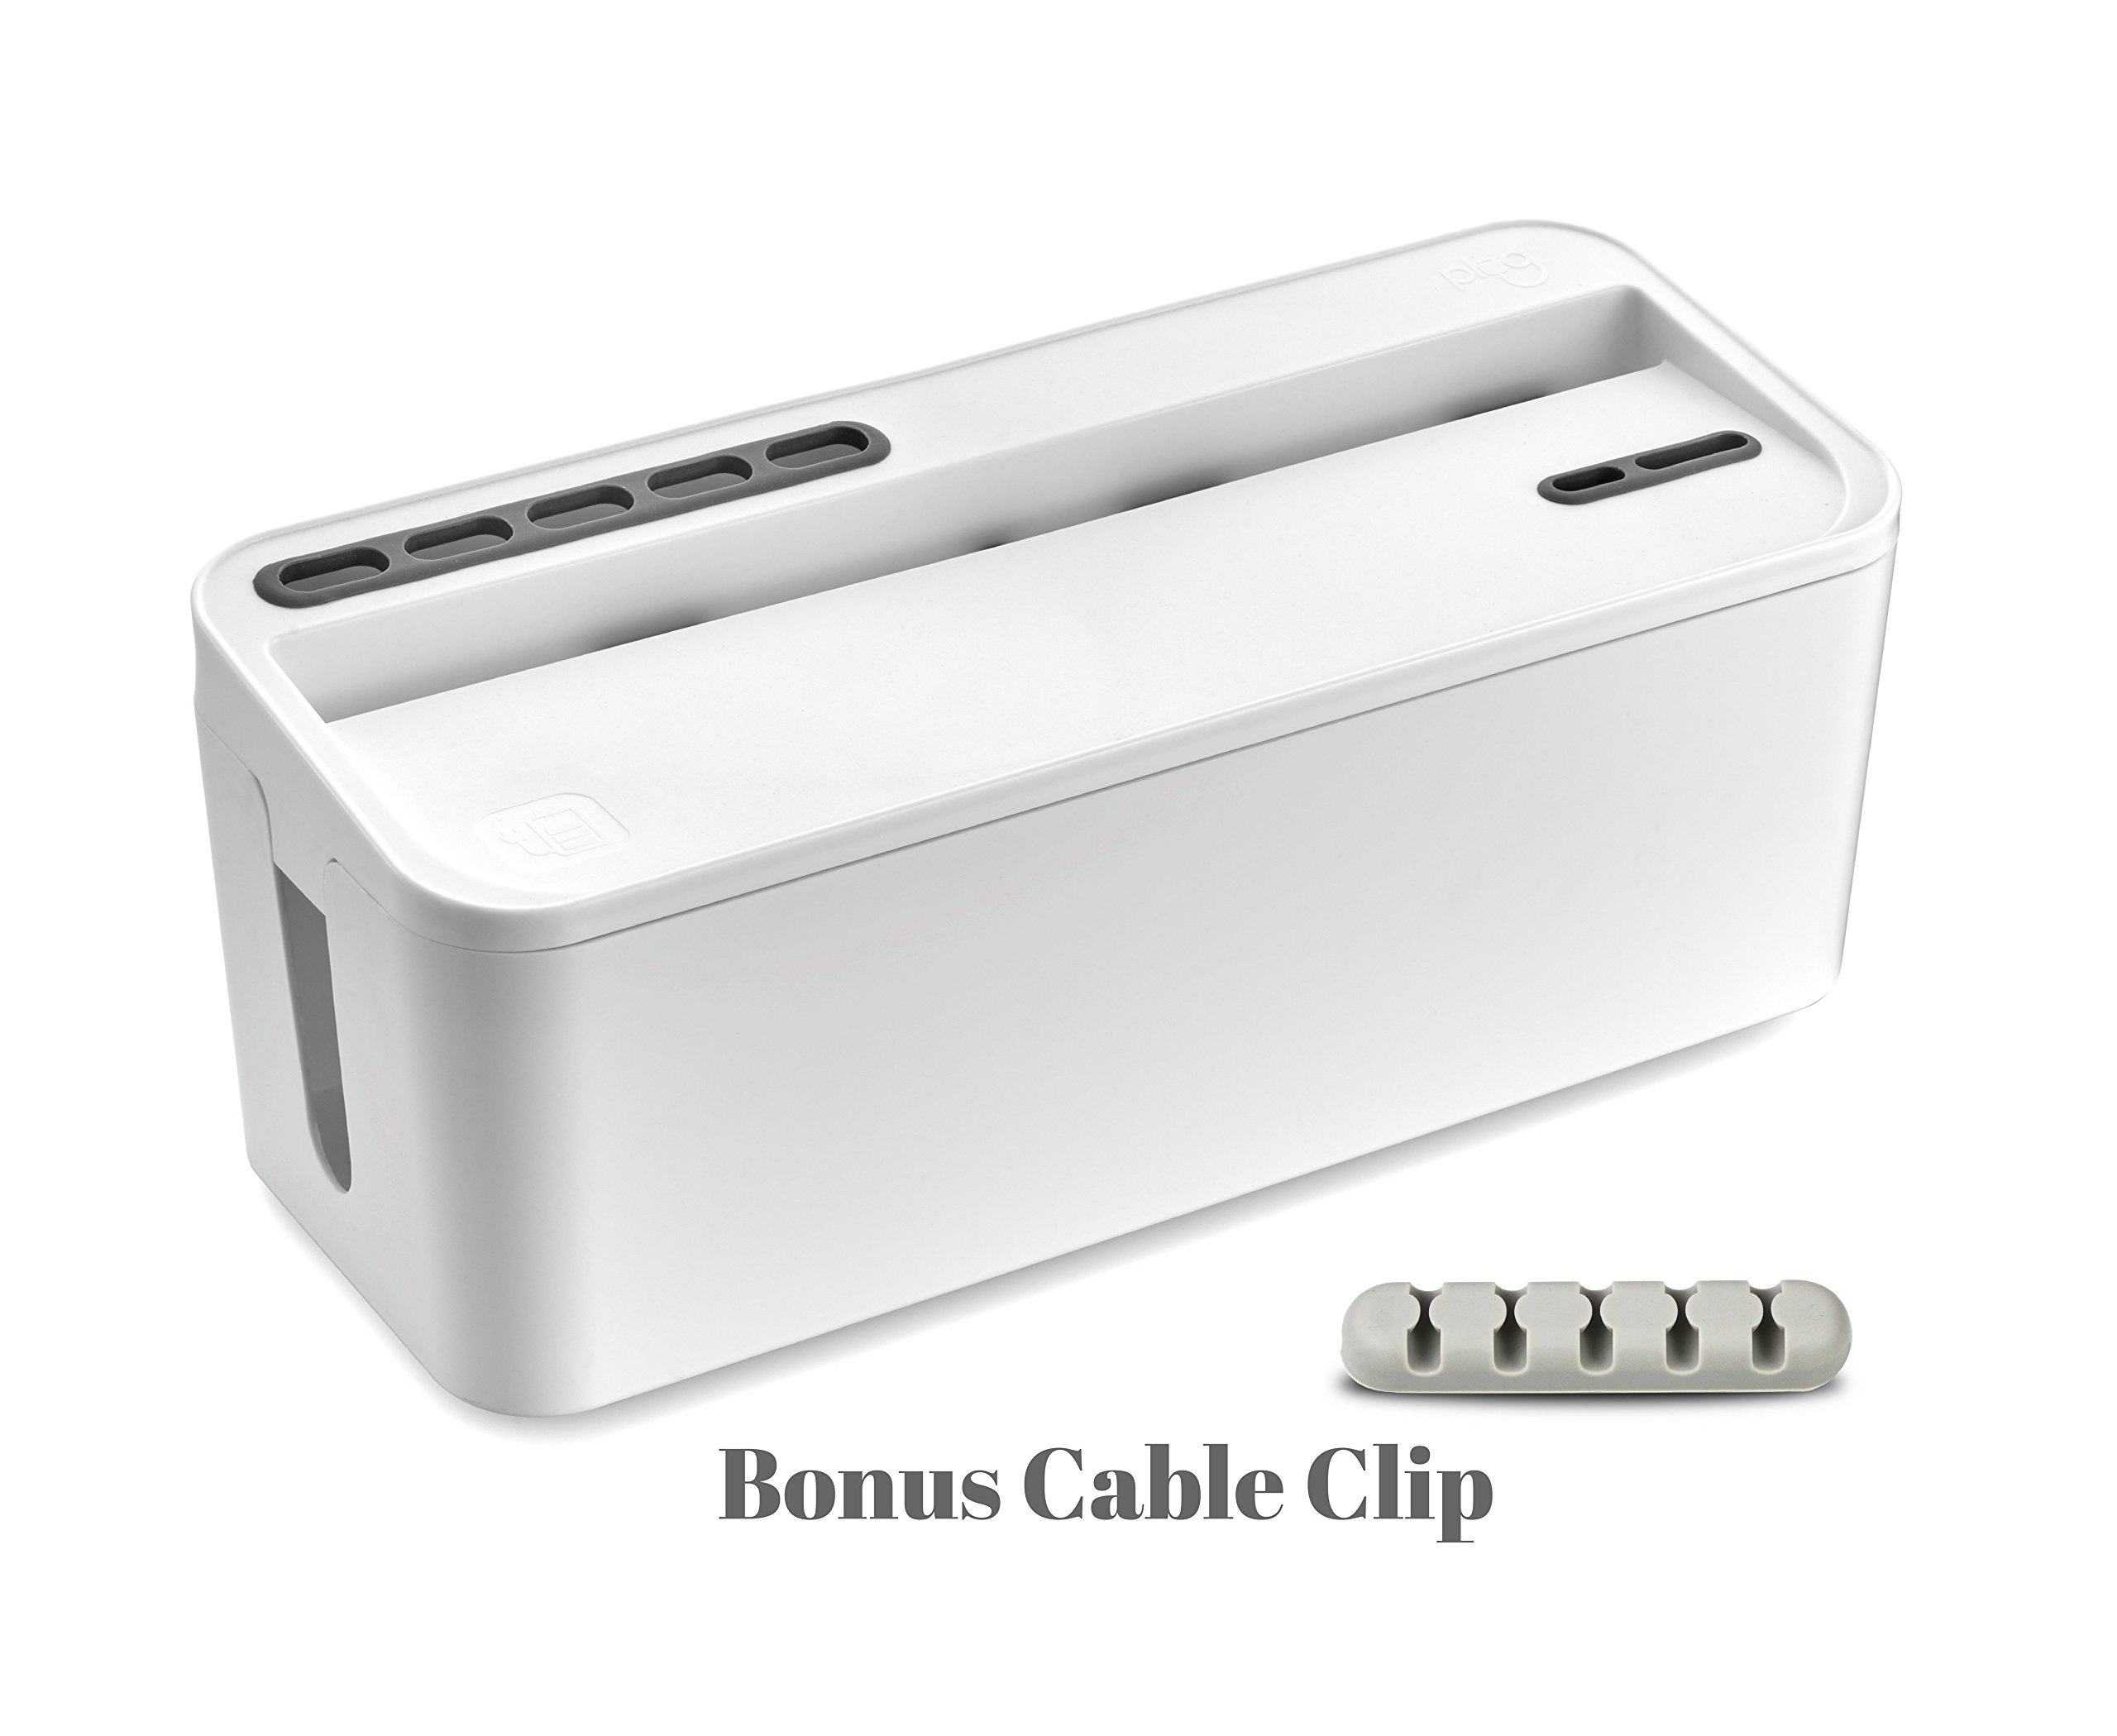 Bins & Things Cable Management Box and Power Strip Organizer | Large - White | Entertainment Center, USB, Computer, Charging Cords | Home and Office Organization | Compact, Discrete Safety